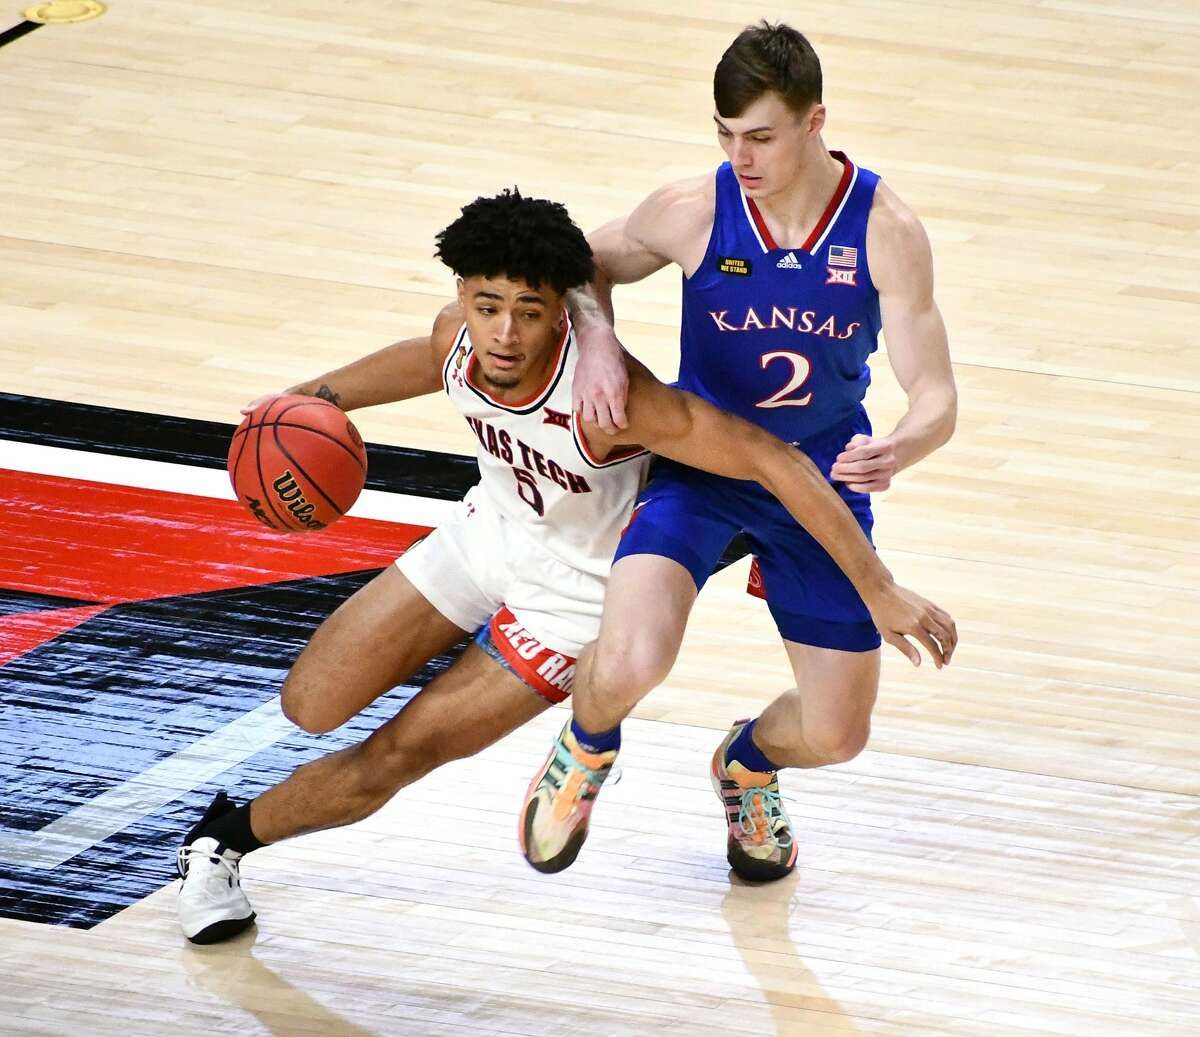 The 14th-ranked Texas Tech Red Raiders suffered a 58-57 loss to 5th-ranked Kansas in a Big 12 men's basketball game on Dec. 17, 2020 in the United Supermarkets Arena in Lubbock.